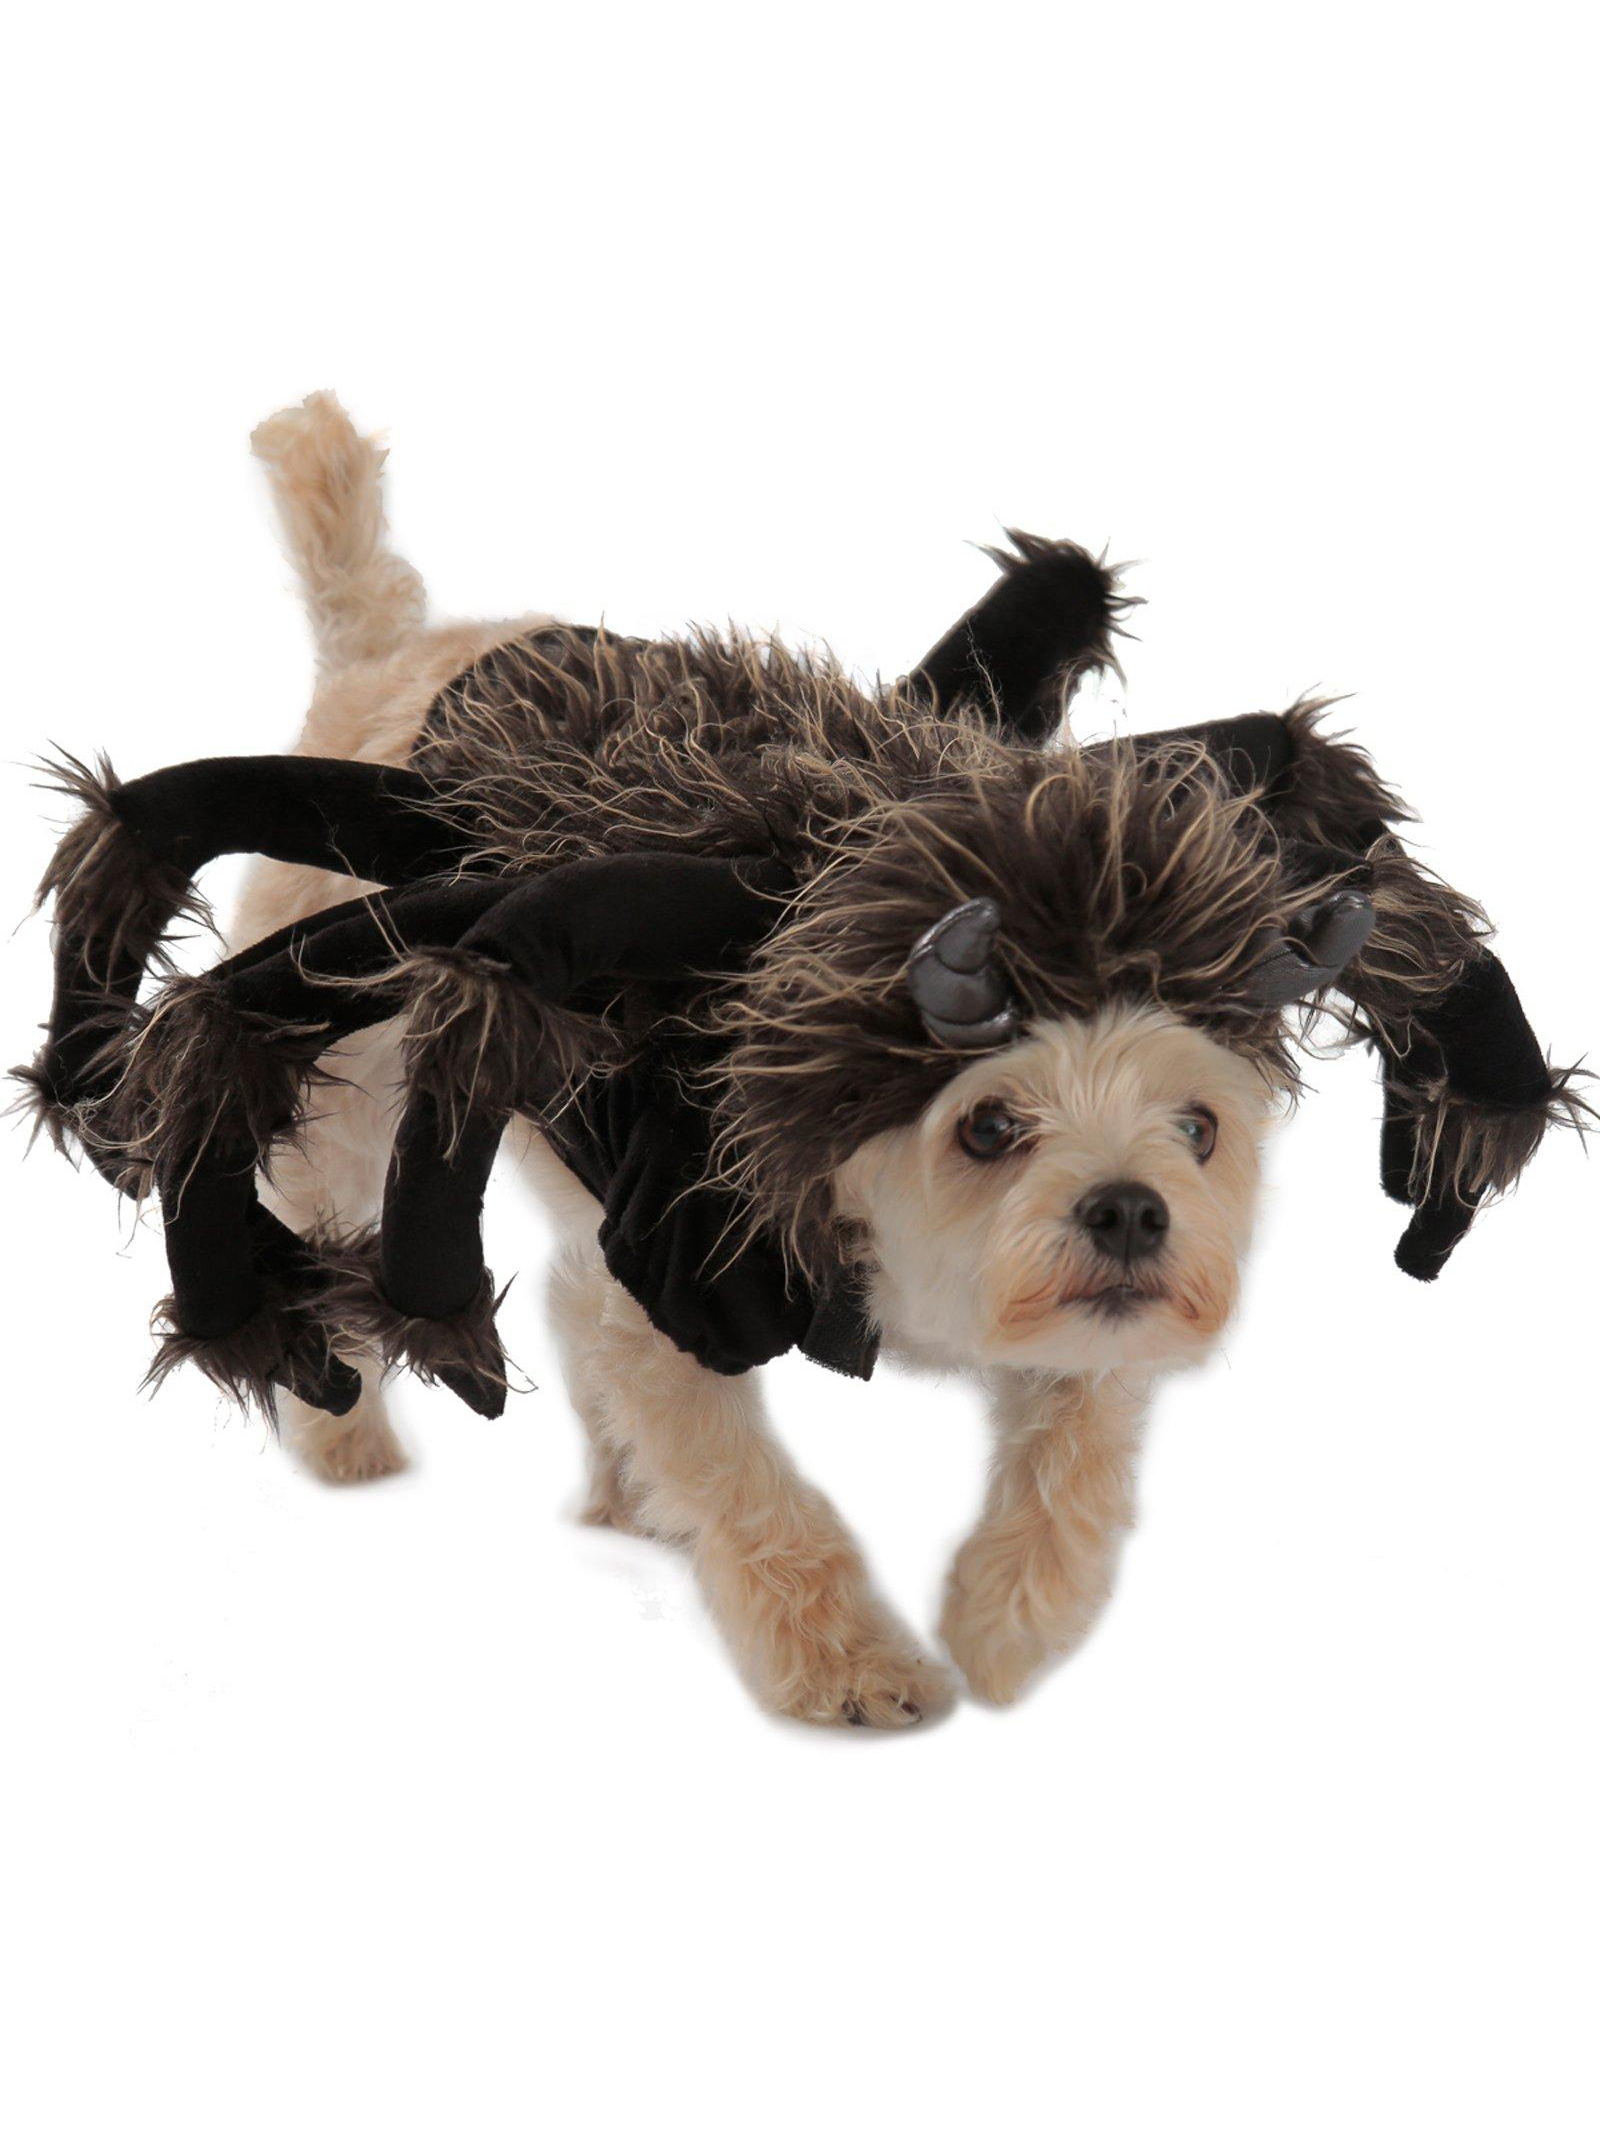 Spider Halloween Costume For Dogs PP14294-L